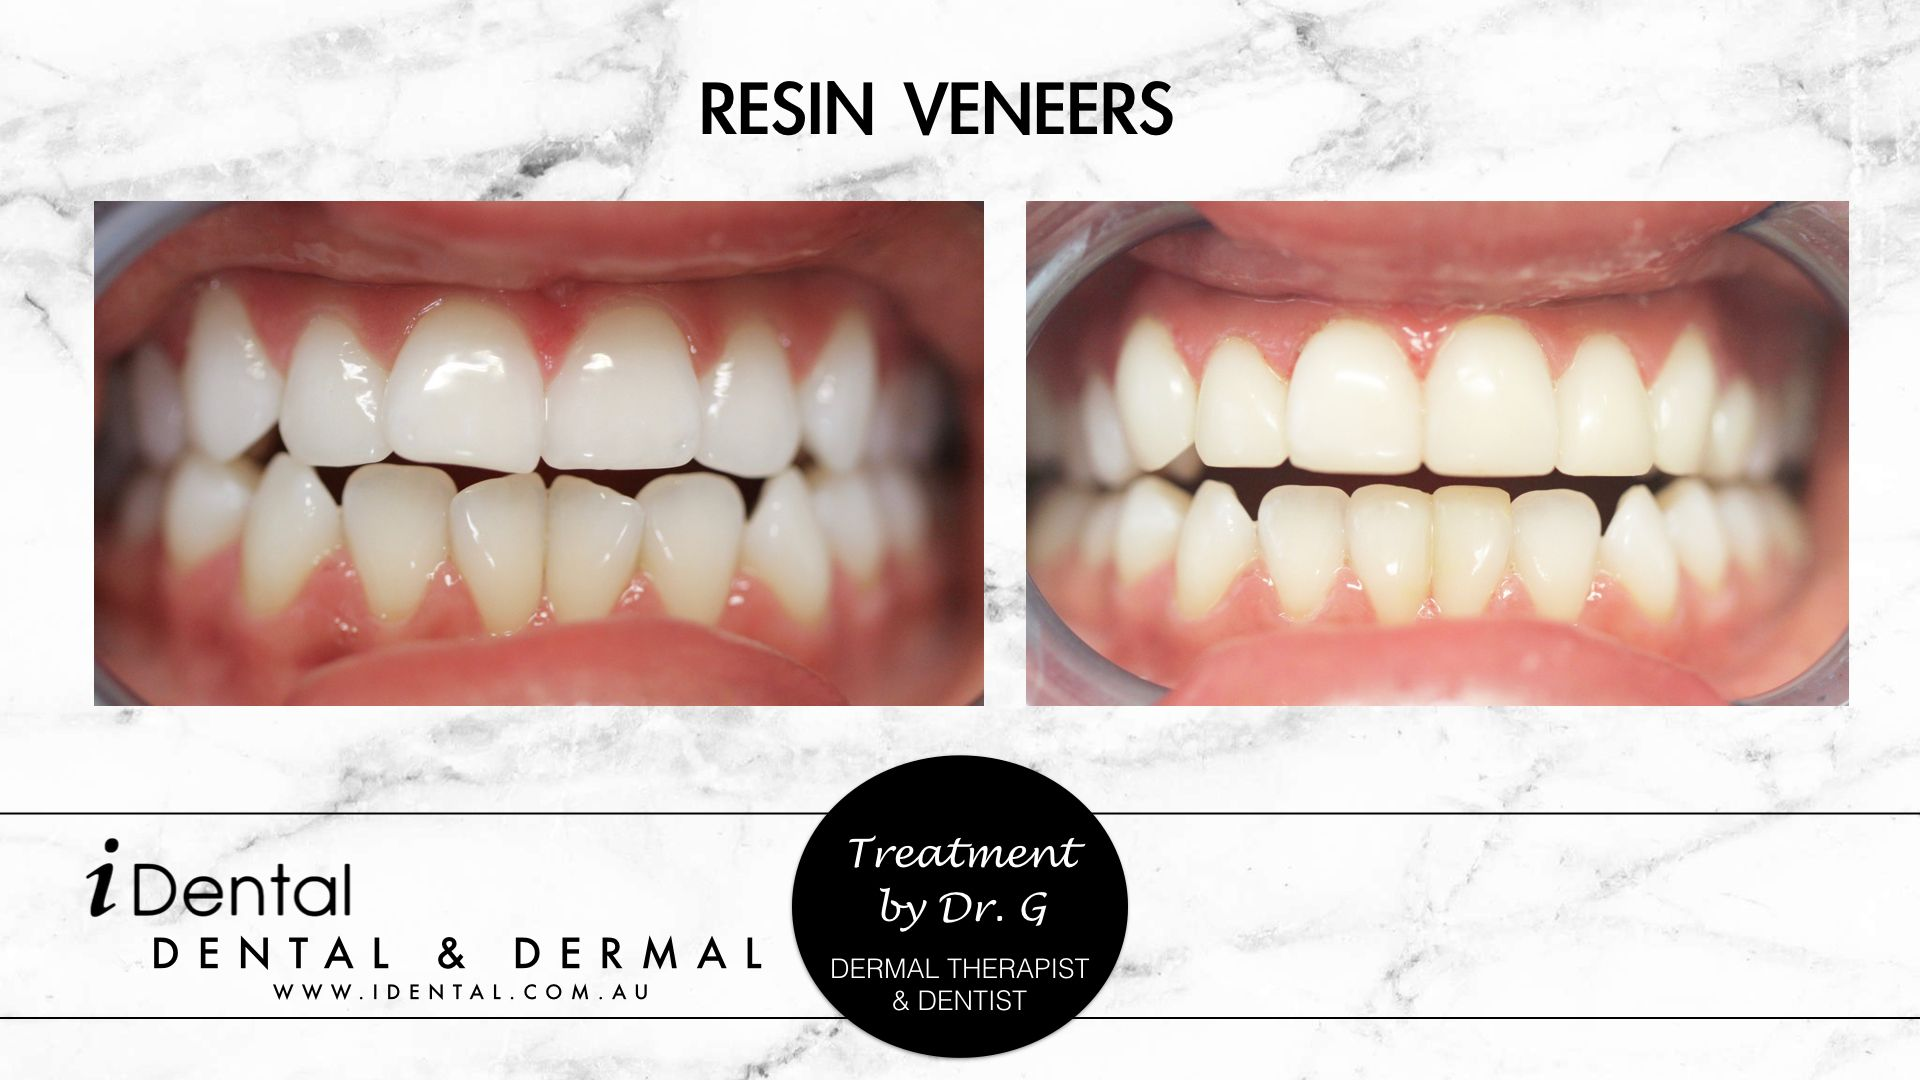 Our Aim Was To Enhance Her Beautiful Smile Creating More Symmetry And Better Flow Of The Front Teeth Cosmetic Dental Work Dental Cosmetics Cosmetic Dentistry